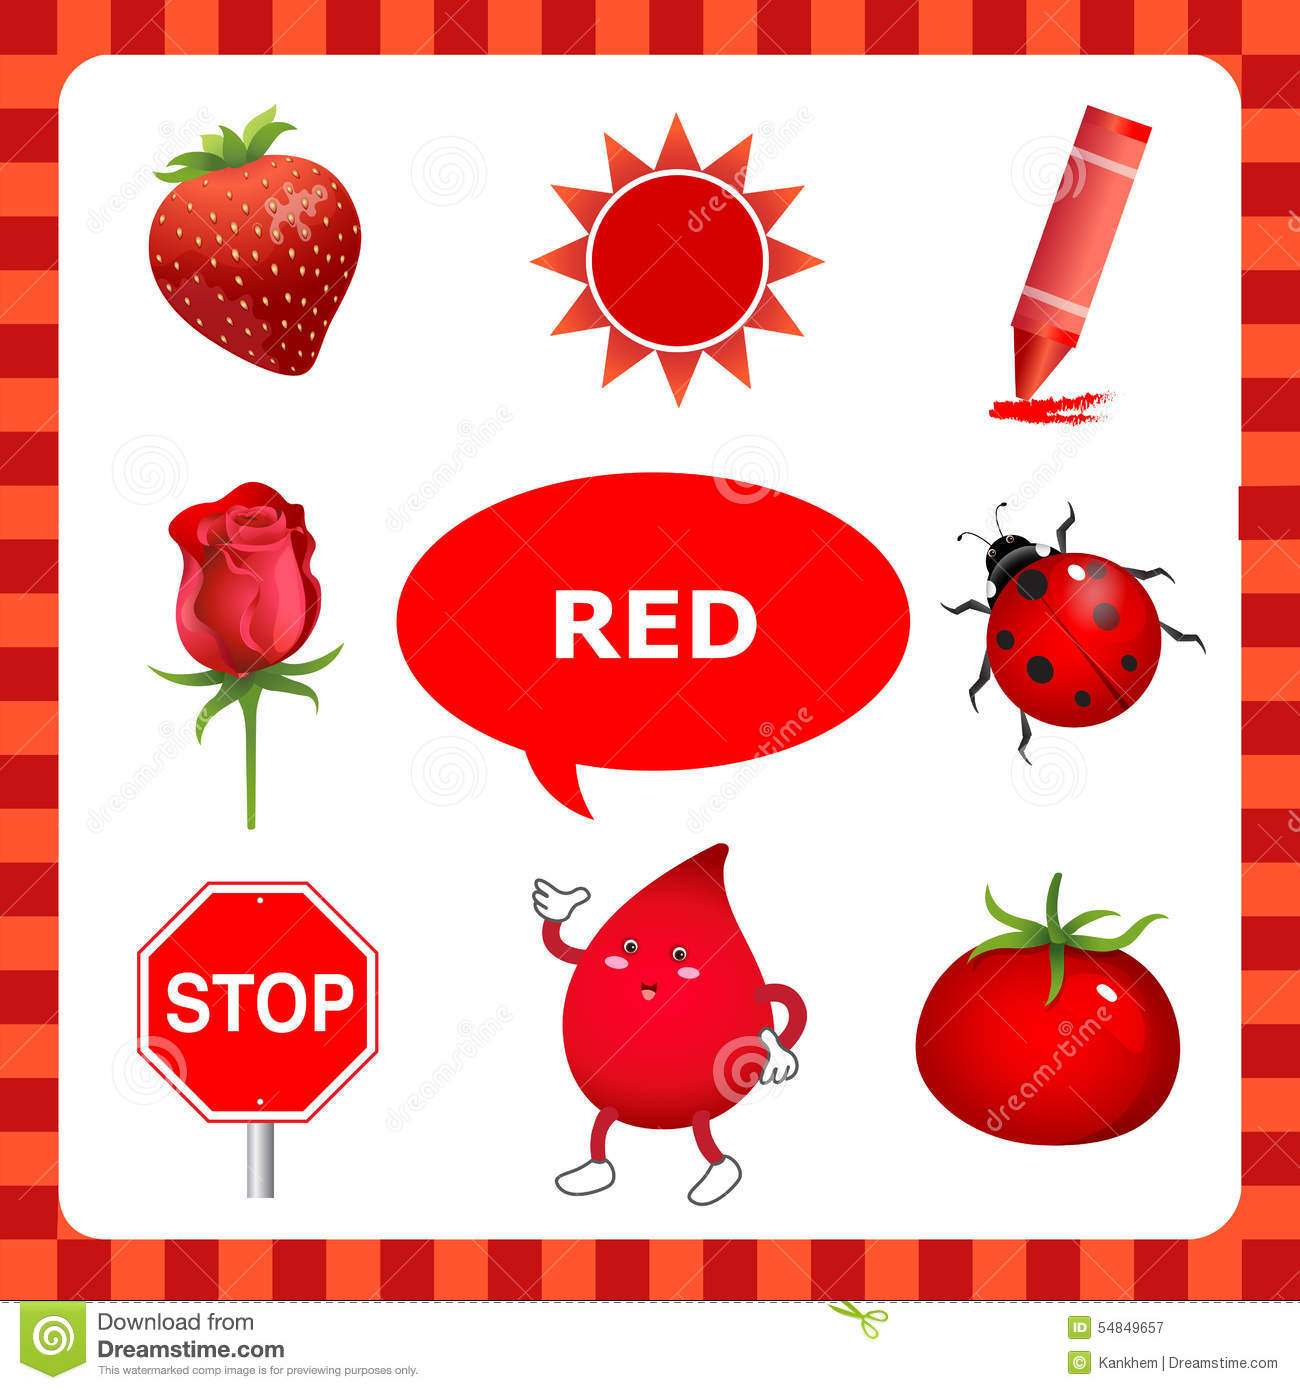 Learn the color red things that are red color